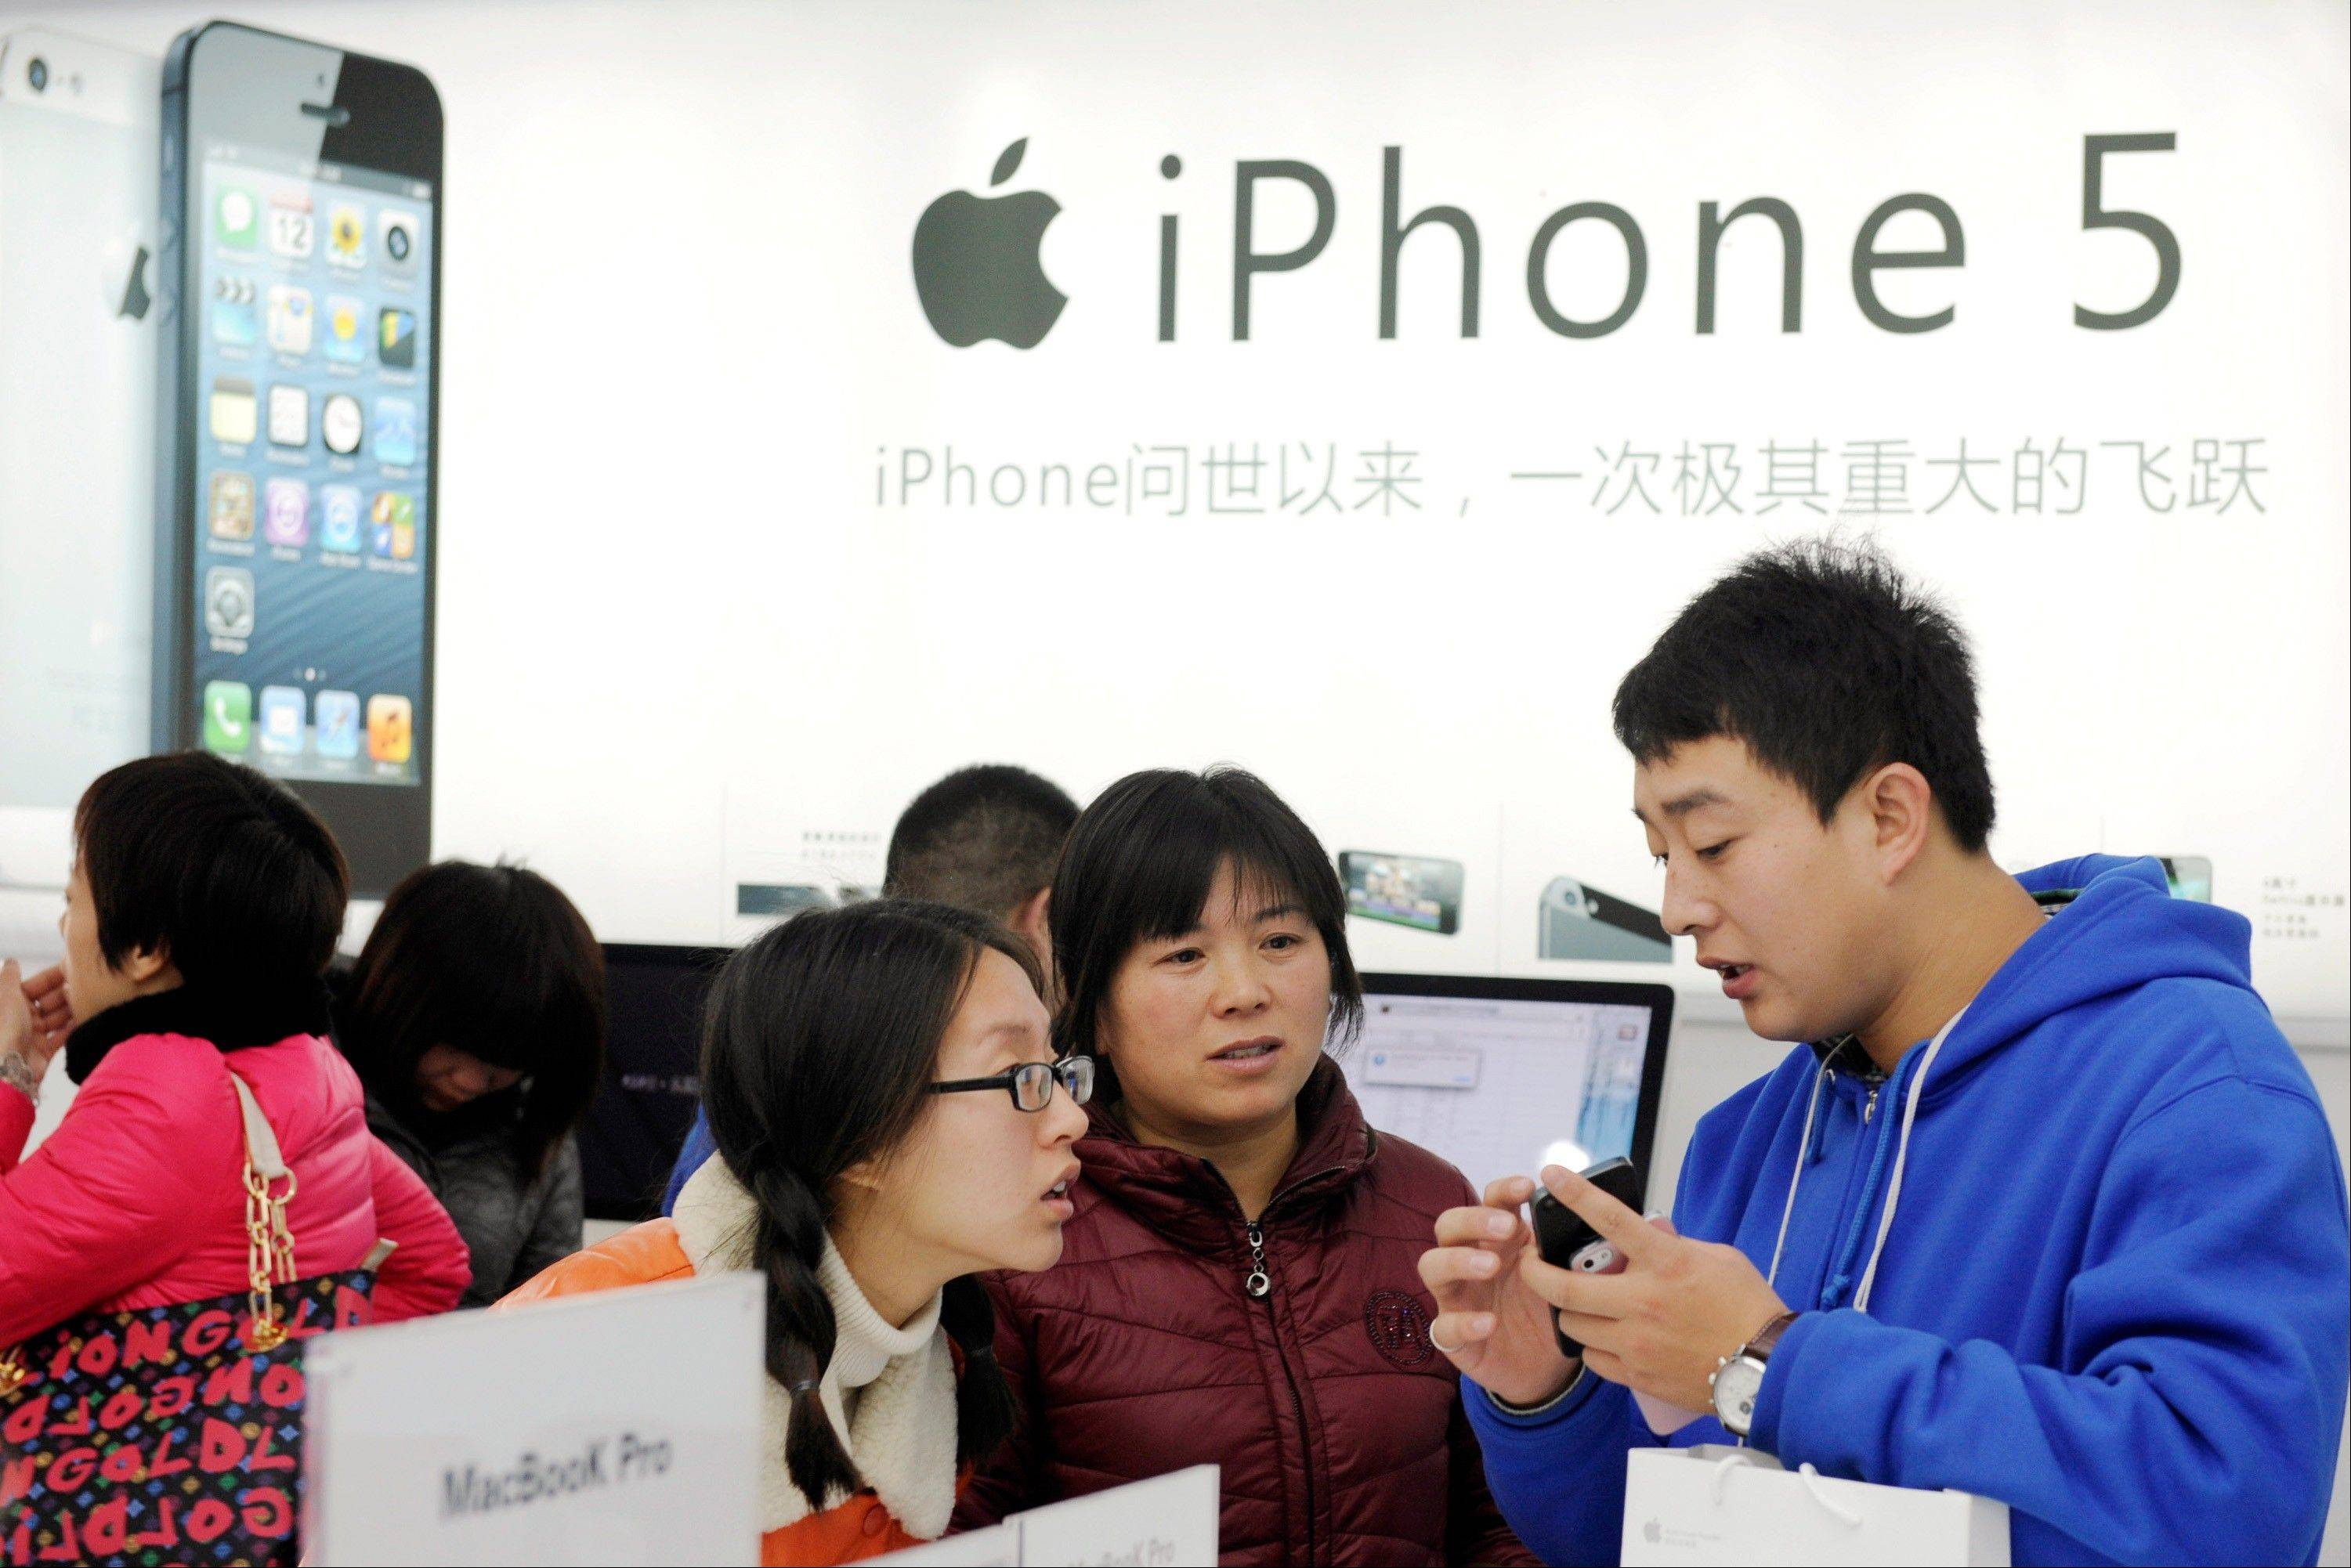 Apple Inc. shares dropped below $500, the first time since February, after the company was downgraded by Citigroup Inc. on concern that demand for the iPhone 5 model is slowing.